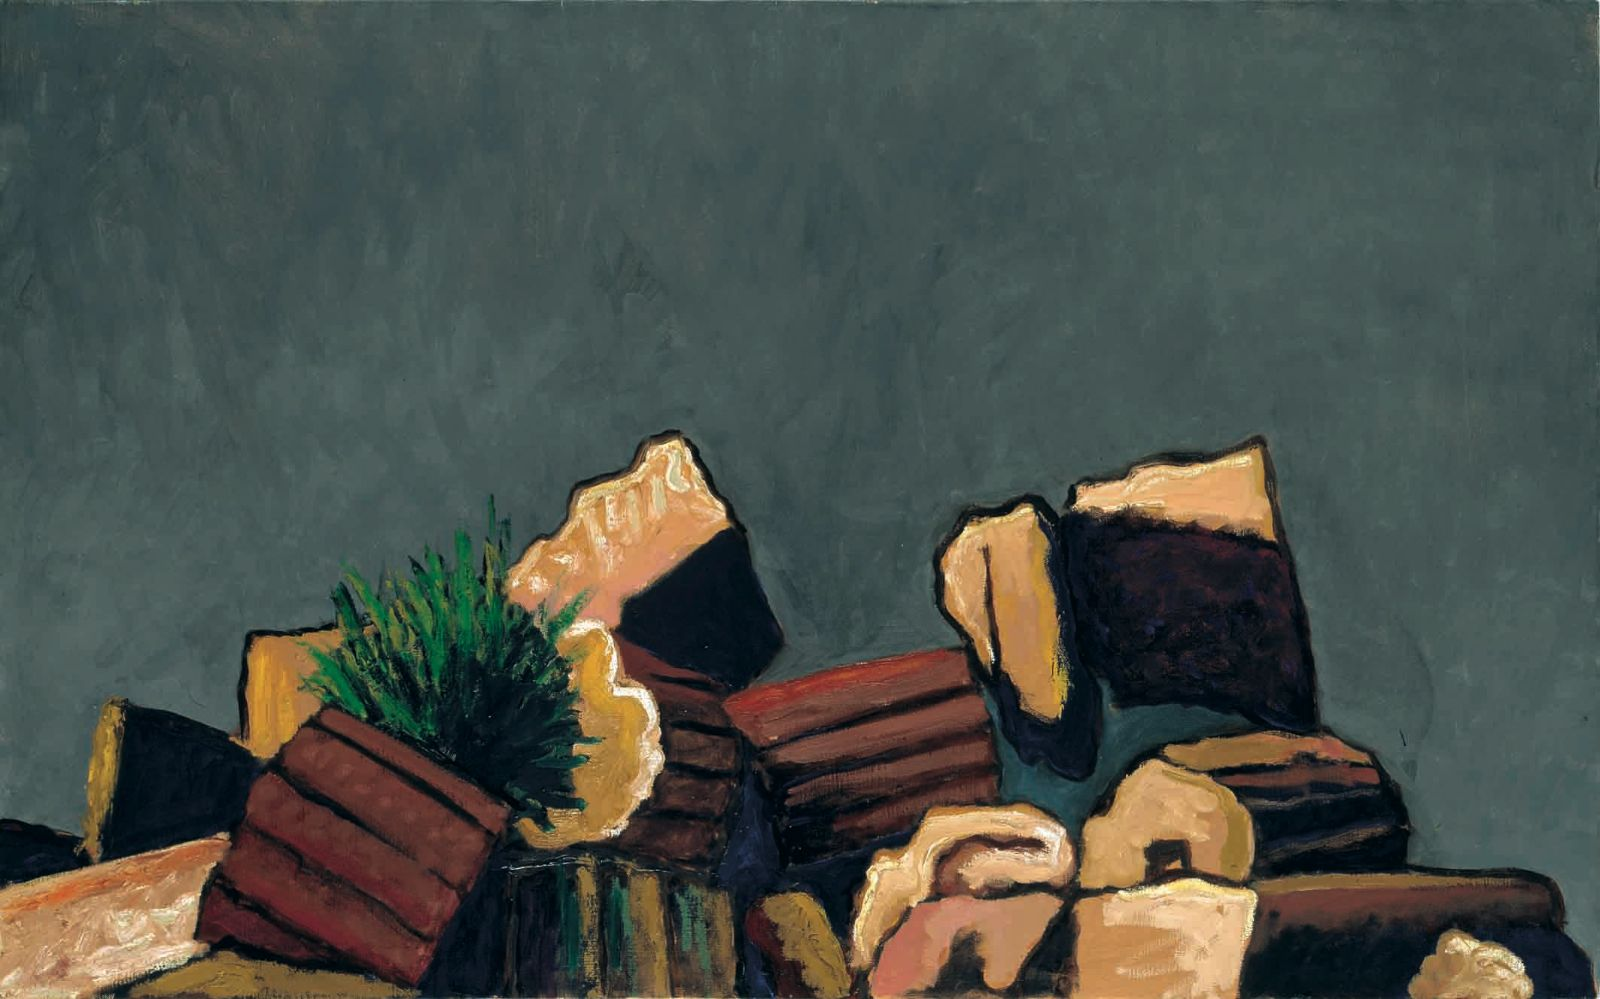 Greek Ruin I, 2004, oil on canvas, 81 x 130 cm